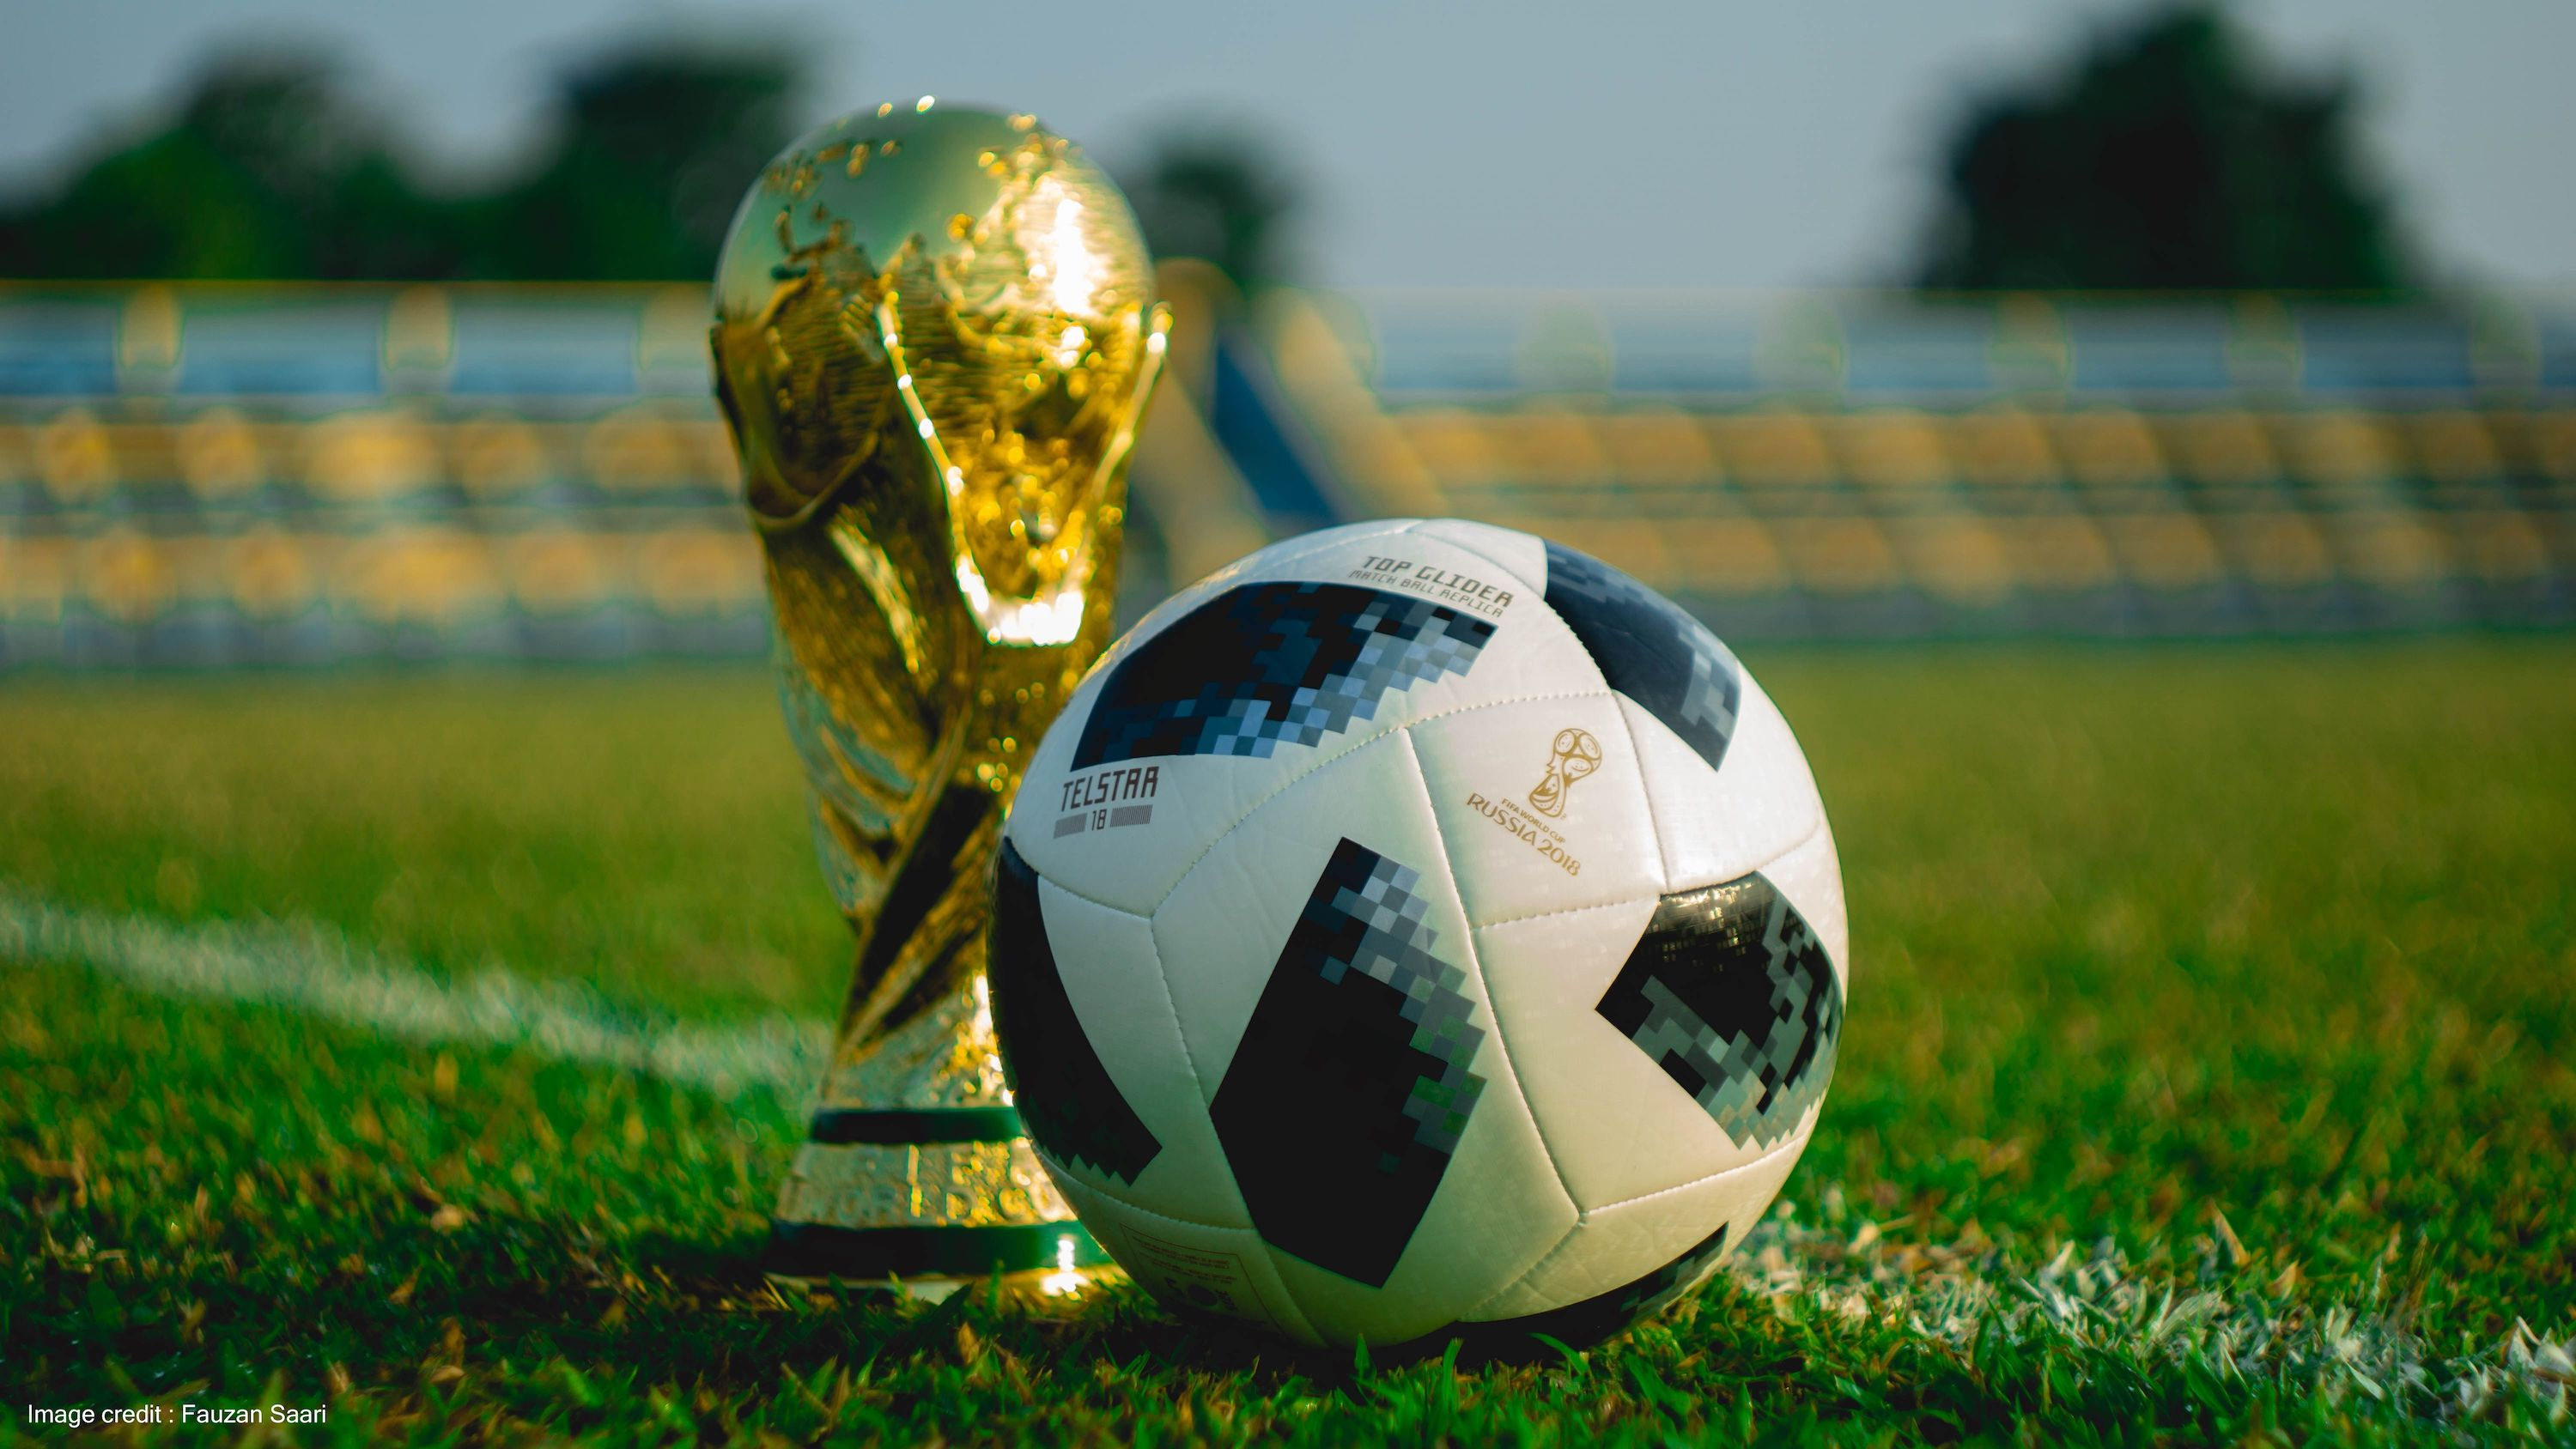 World Cup betting may lead to gambling addiction